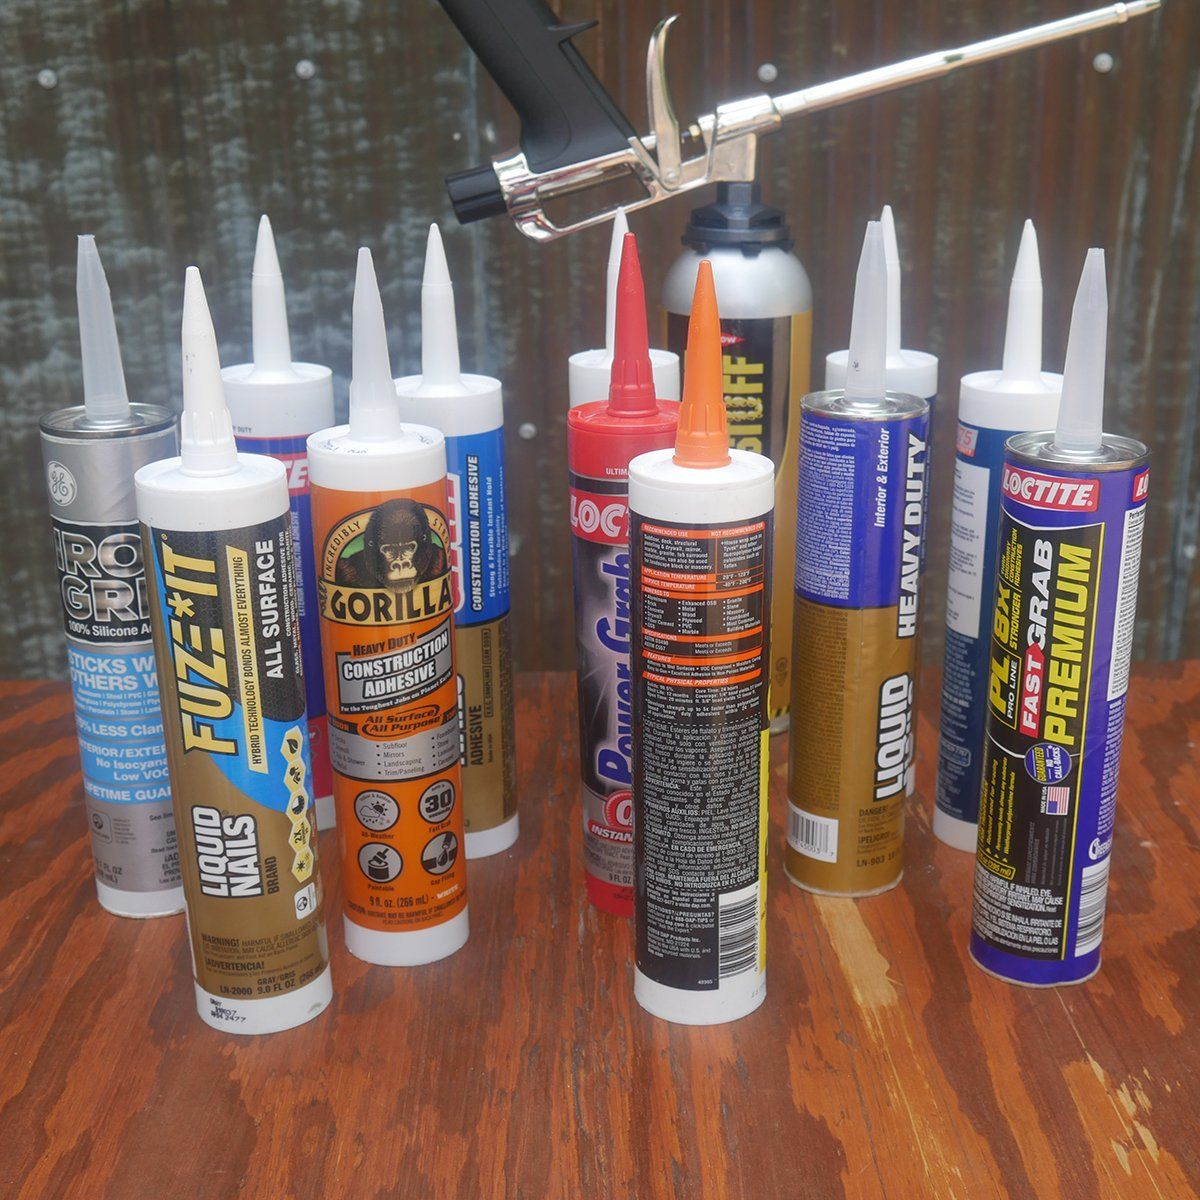 We Tested 10 Top Construction Adhesives In 2020 With Images Construction Adhesive Construction Glue Construction